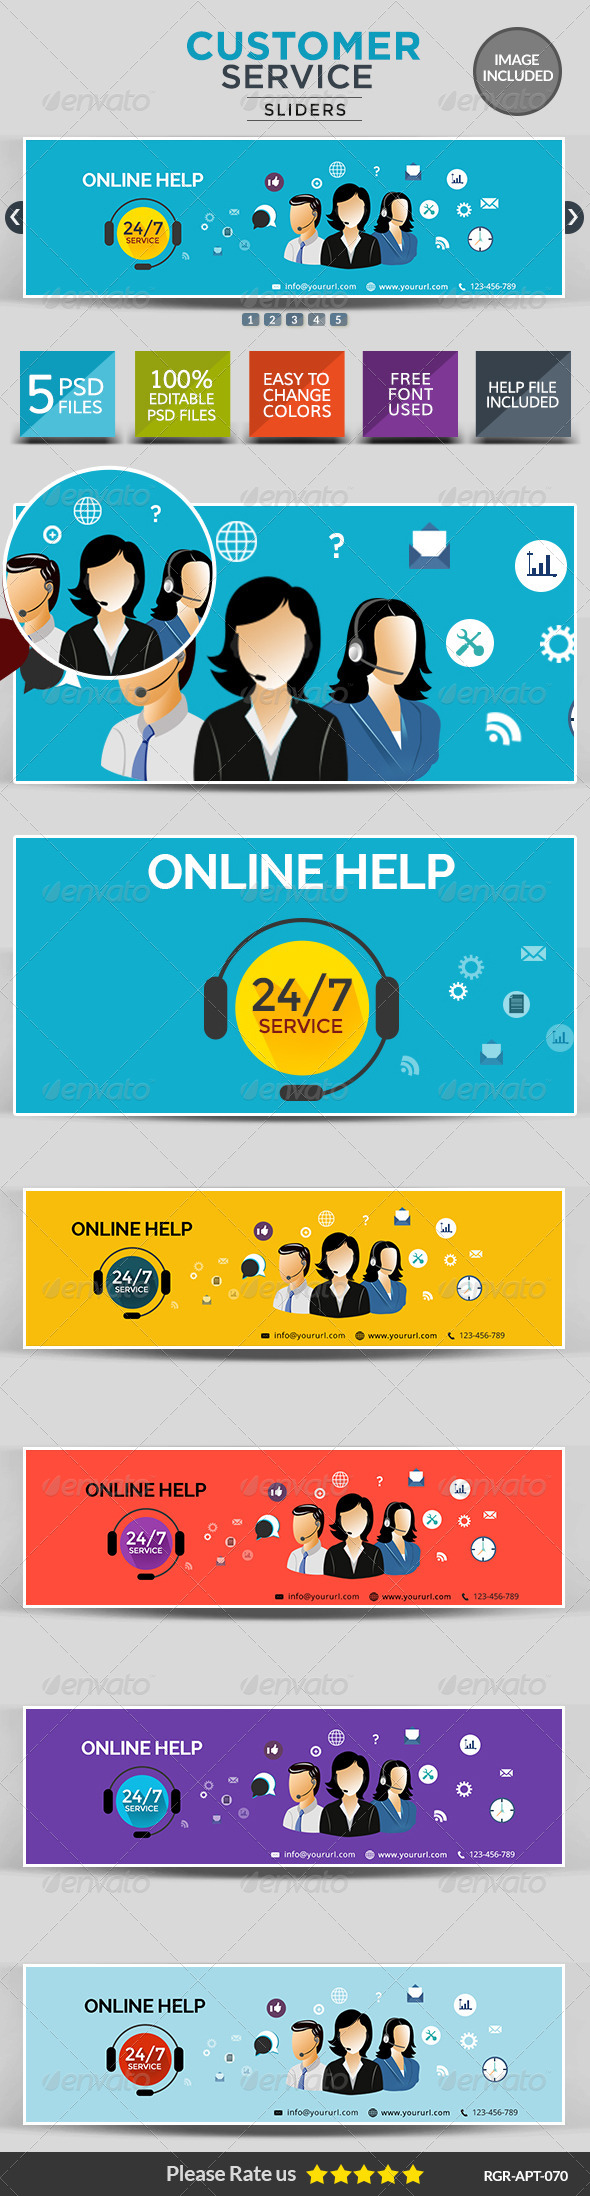 GraphicRiver Customer Service Sliders 8719108